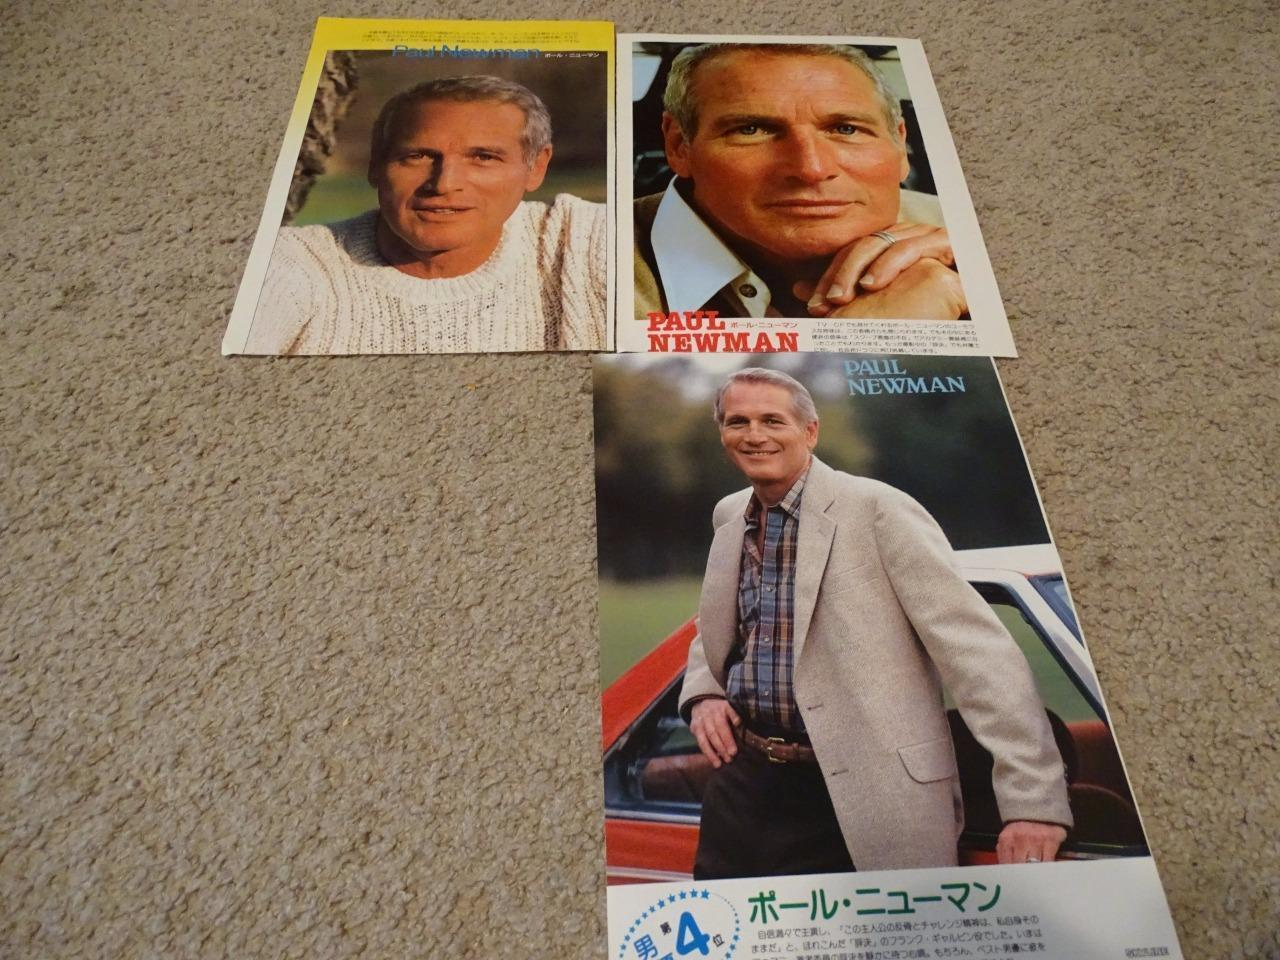 Paul Newman teen magazine pinup clipping Road to Perdition Cars Cool Hand Luke